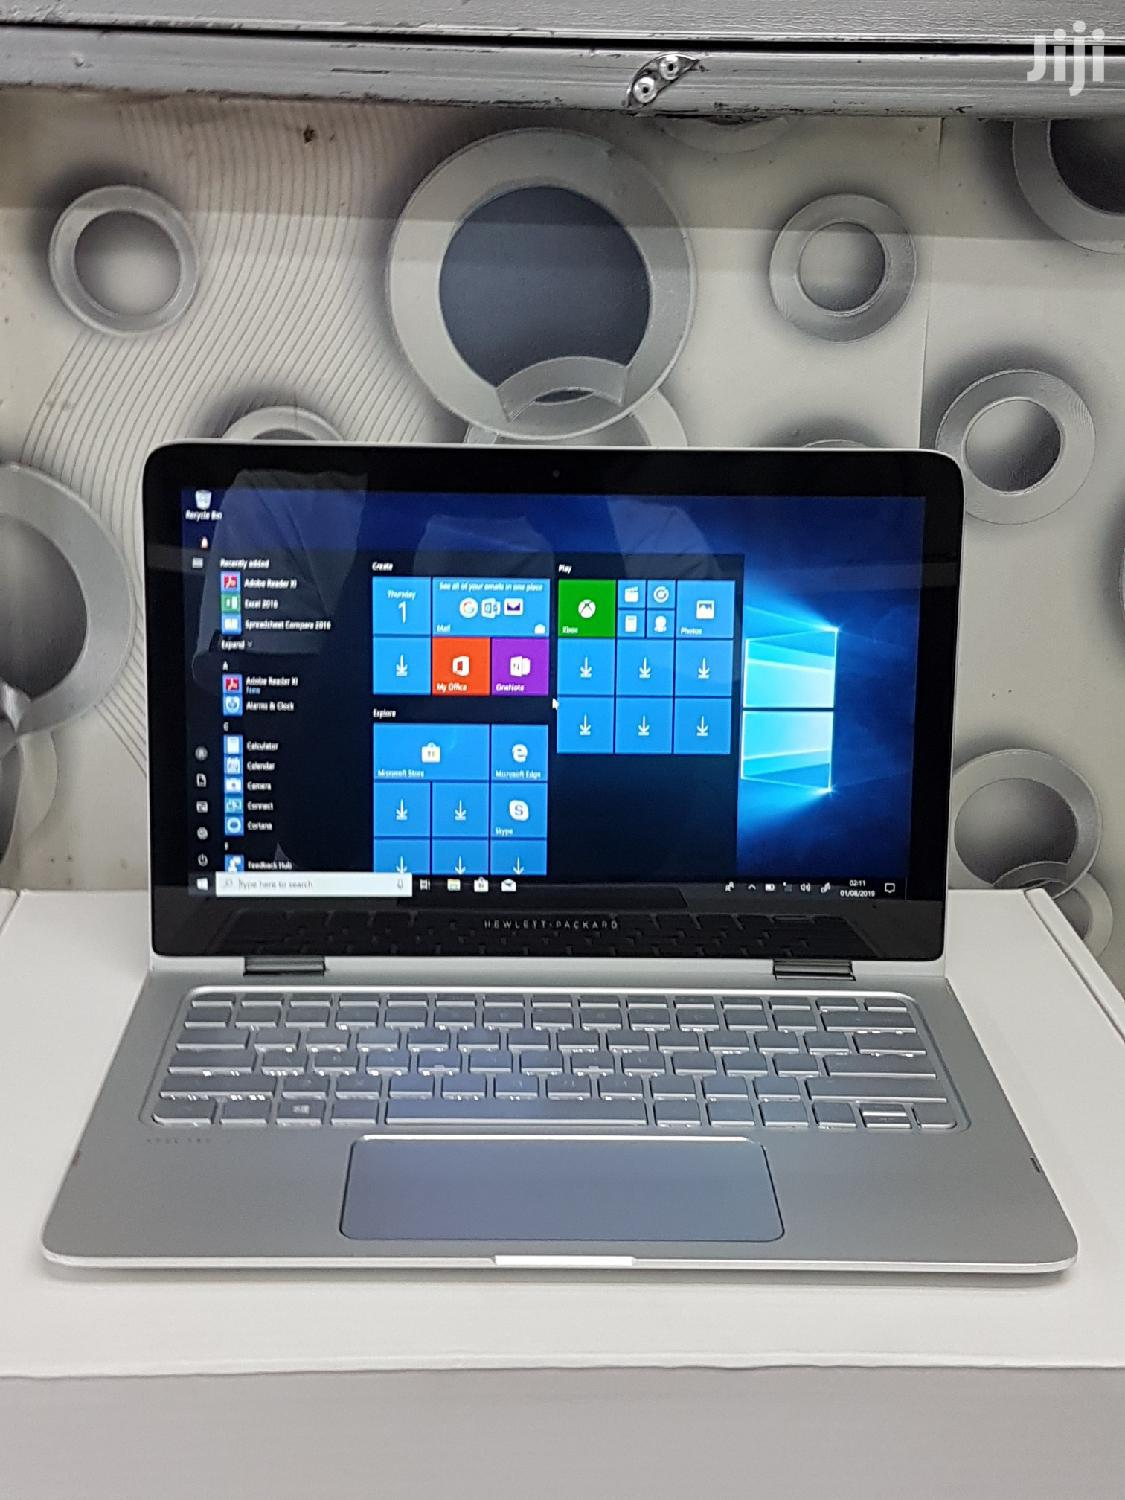 New Laptop HP Spectre X360 8GB Intel Core I5 SSD 256GB | Laptops & Computers for sale in Nairobi Central, Nairobi, Kenya